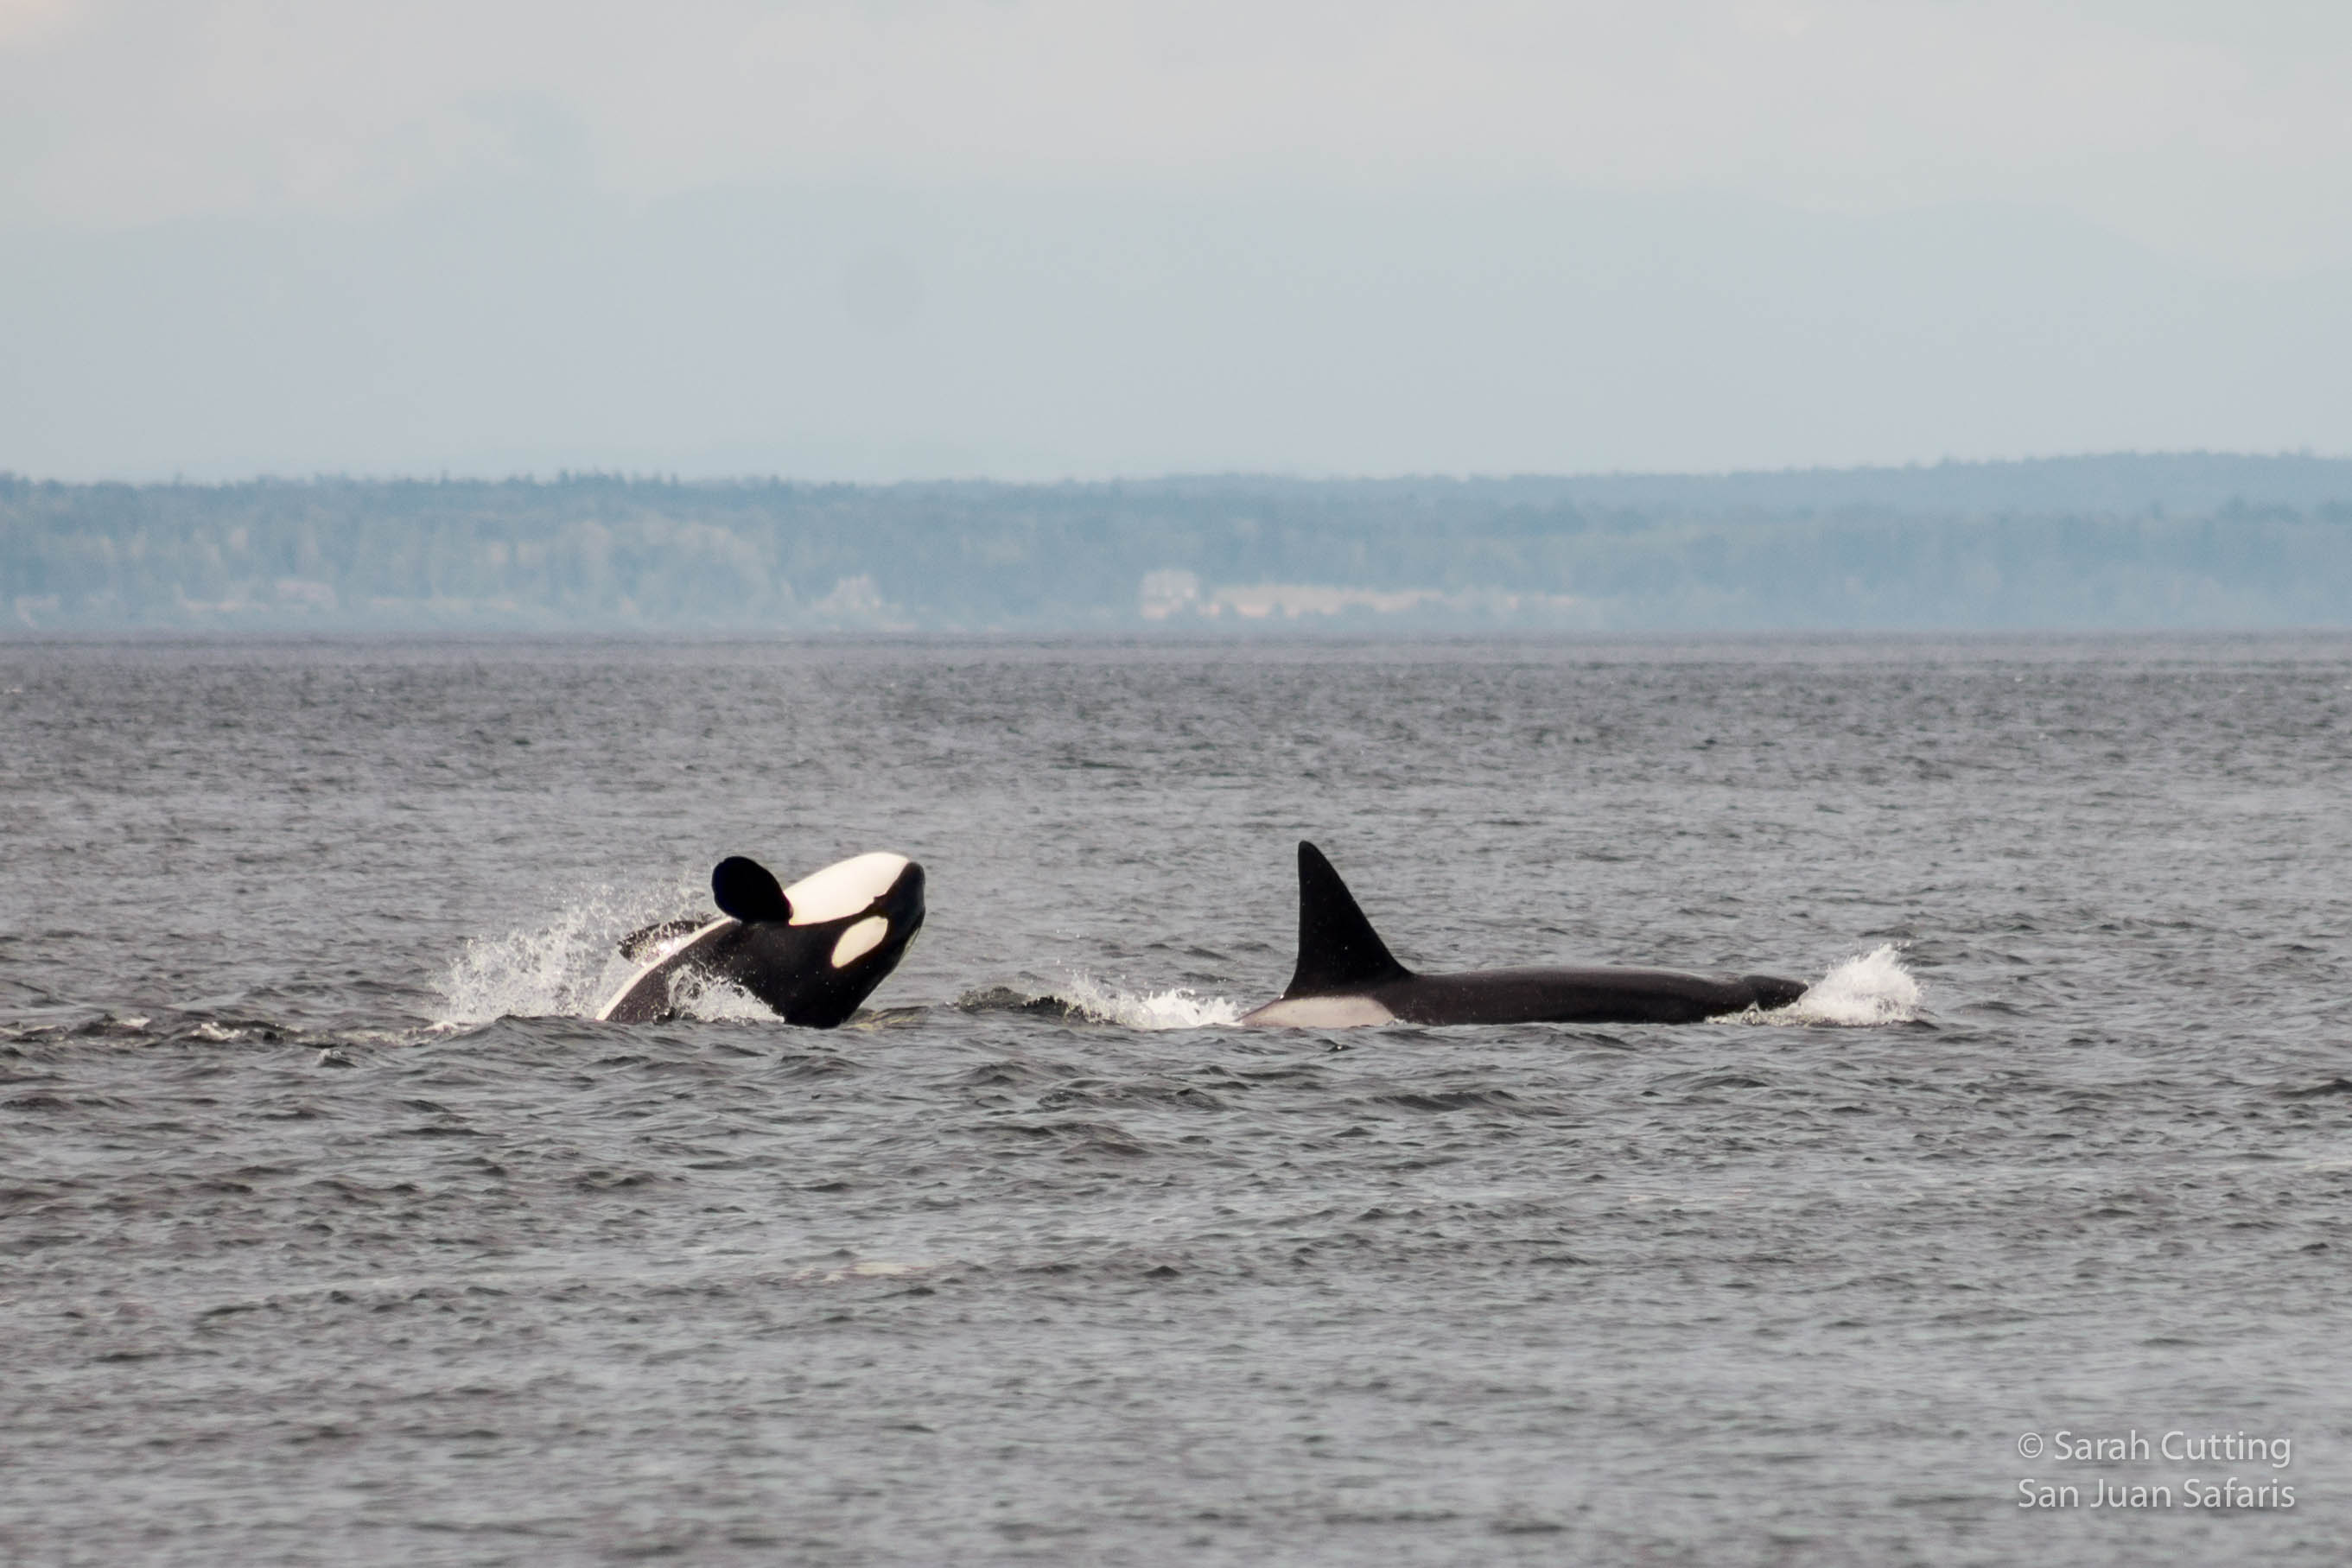 A True T-Party – Two Transient Orca Families Play in Canadian Waters